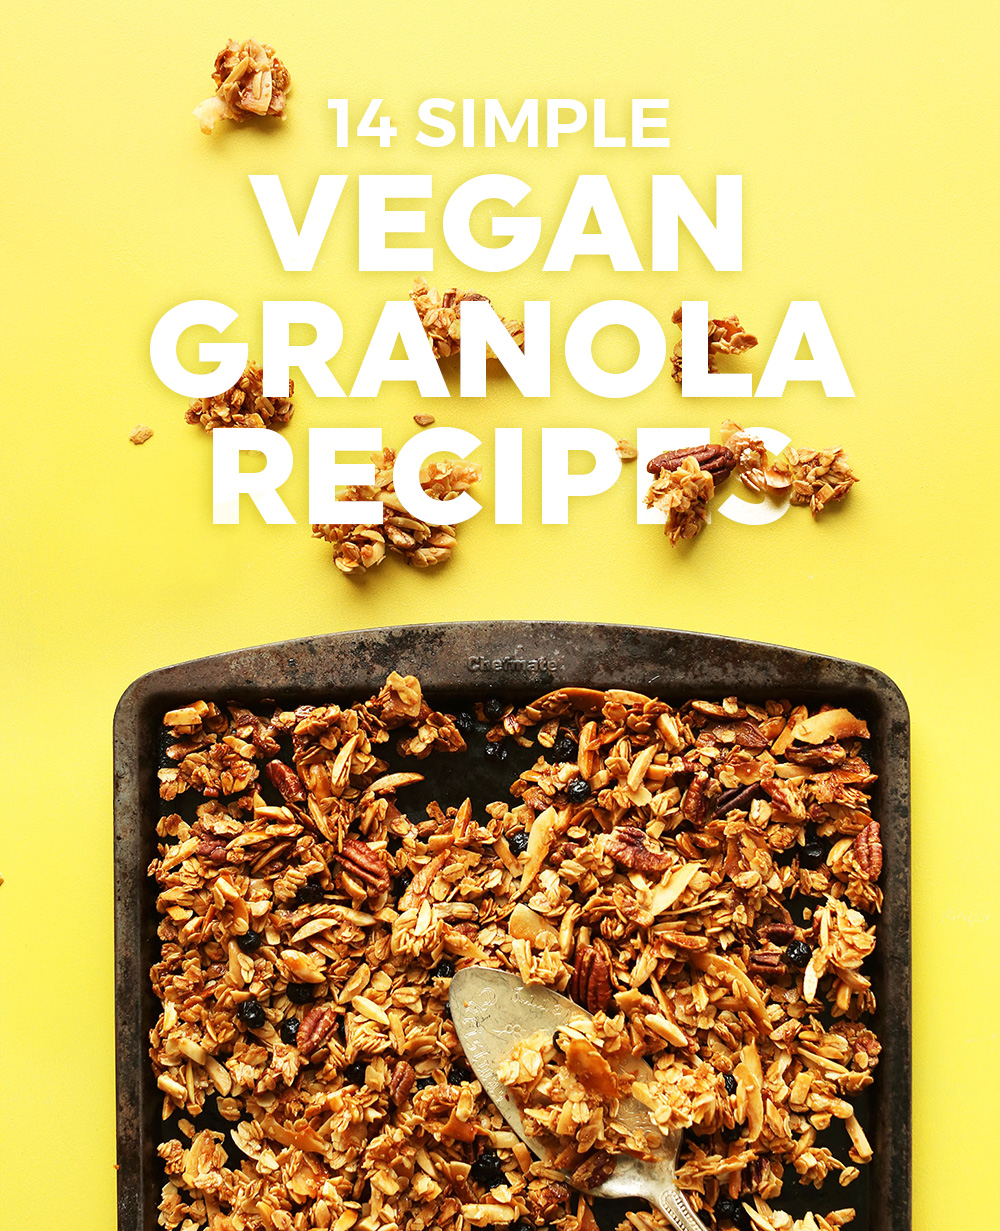 Baking sheet with a batch of freshly baked granola for our Simple Vegan Granola Recipes post